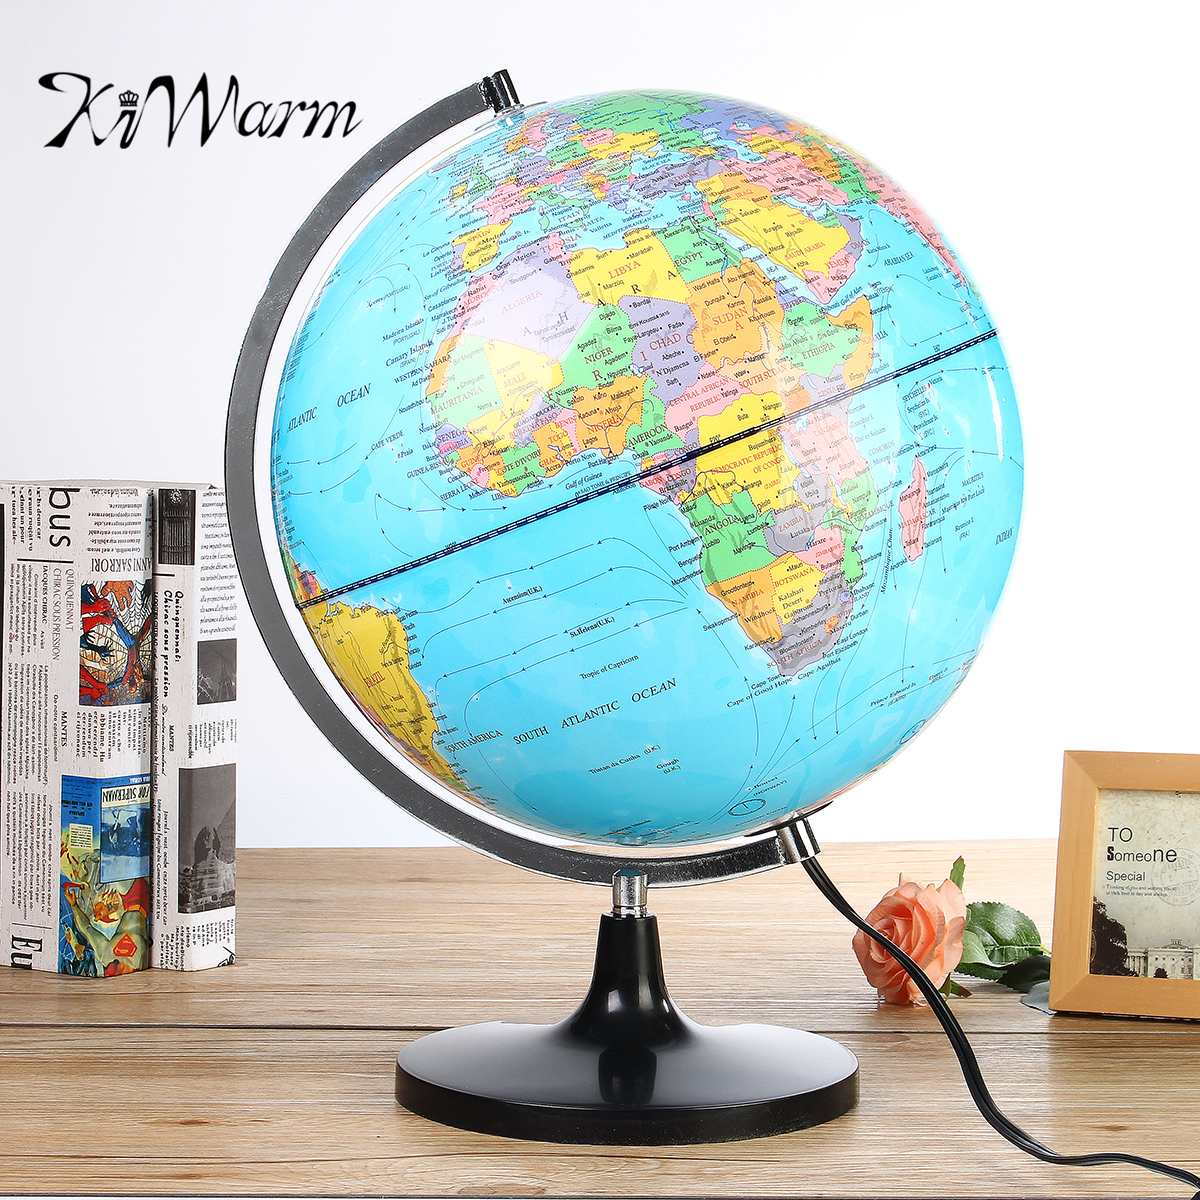 Aerated inflatable world globe ball earth tellurion home decorative kiwarm illuminated blue ocean world earth globe map teaching geography map rotating night light desktop decor gumiabroncs Choice Image